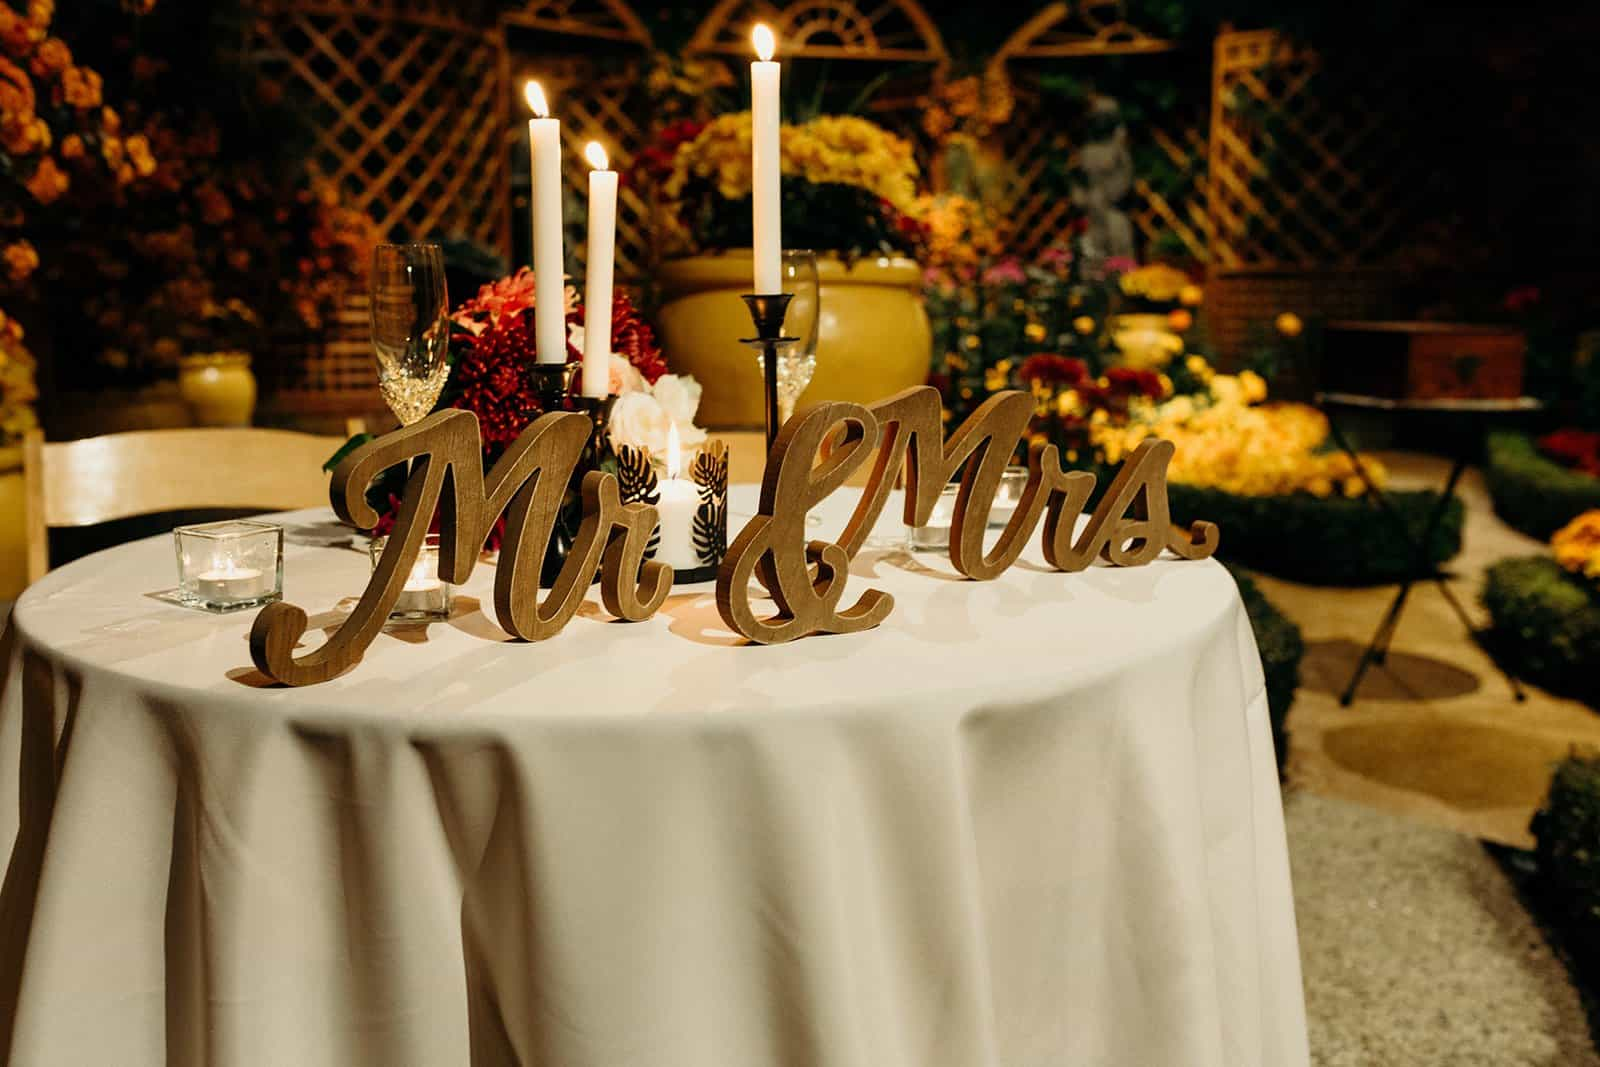 Mr & Mrs sign with candles on table